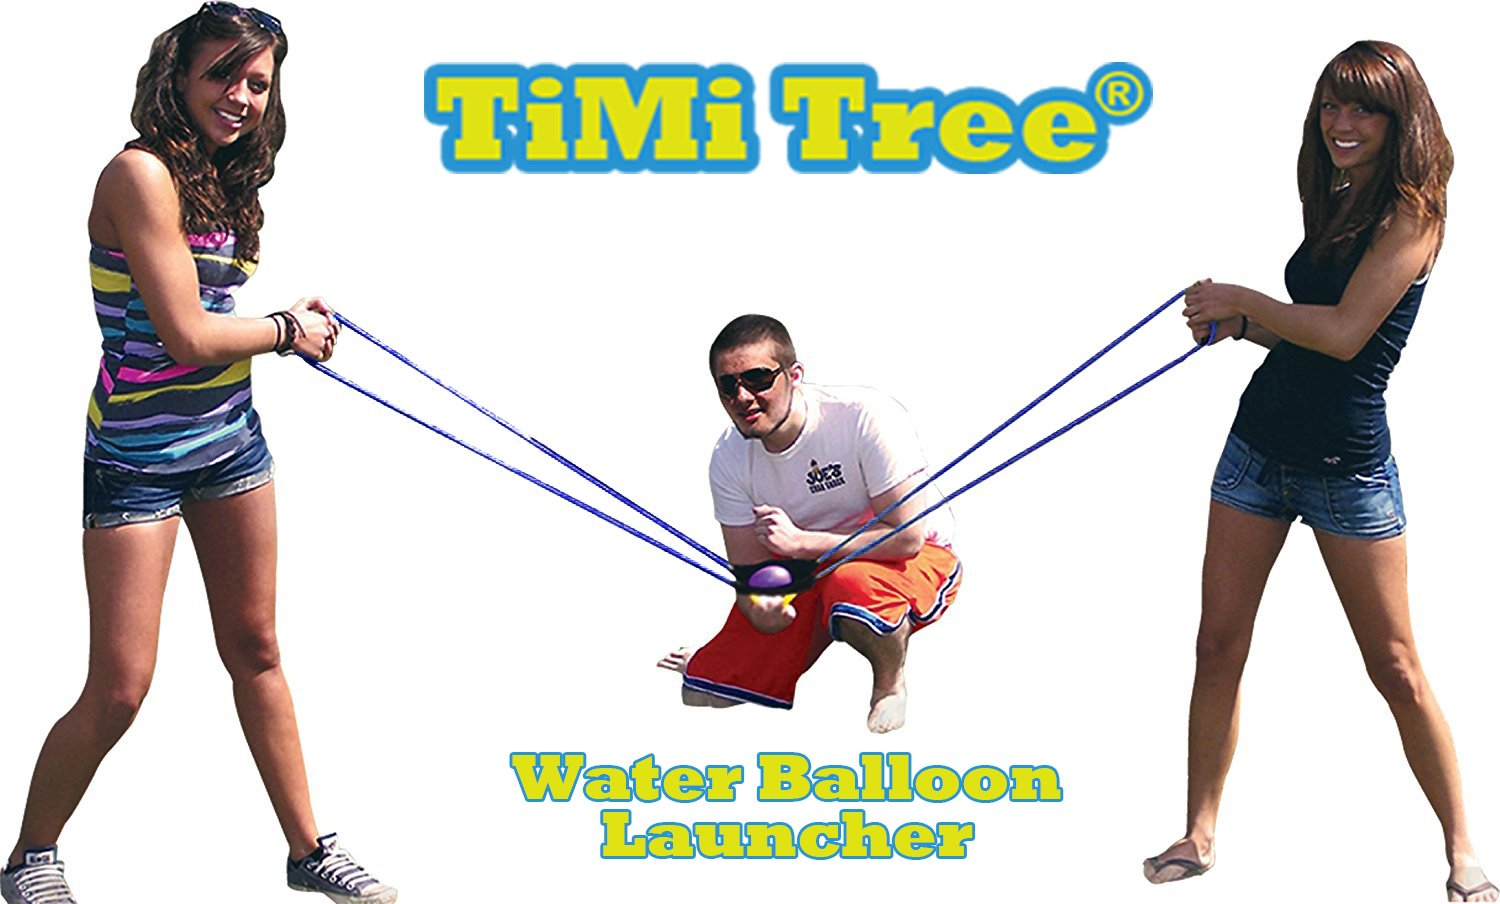 TiMi Tree Water Balloon Launcher 400 meters Long Range, Heavy Duty Water Bomb Cannon / Slingshot Fun Water Balloon Fight Pool Party Toy, 3 People Giant Angry Birds Summer Beach Games,500 Balloons & Carry Case, Ideal Gift with Water Pistols,